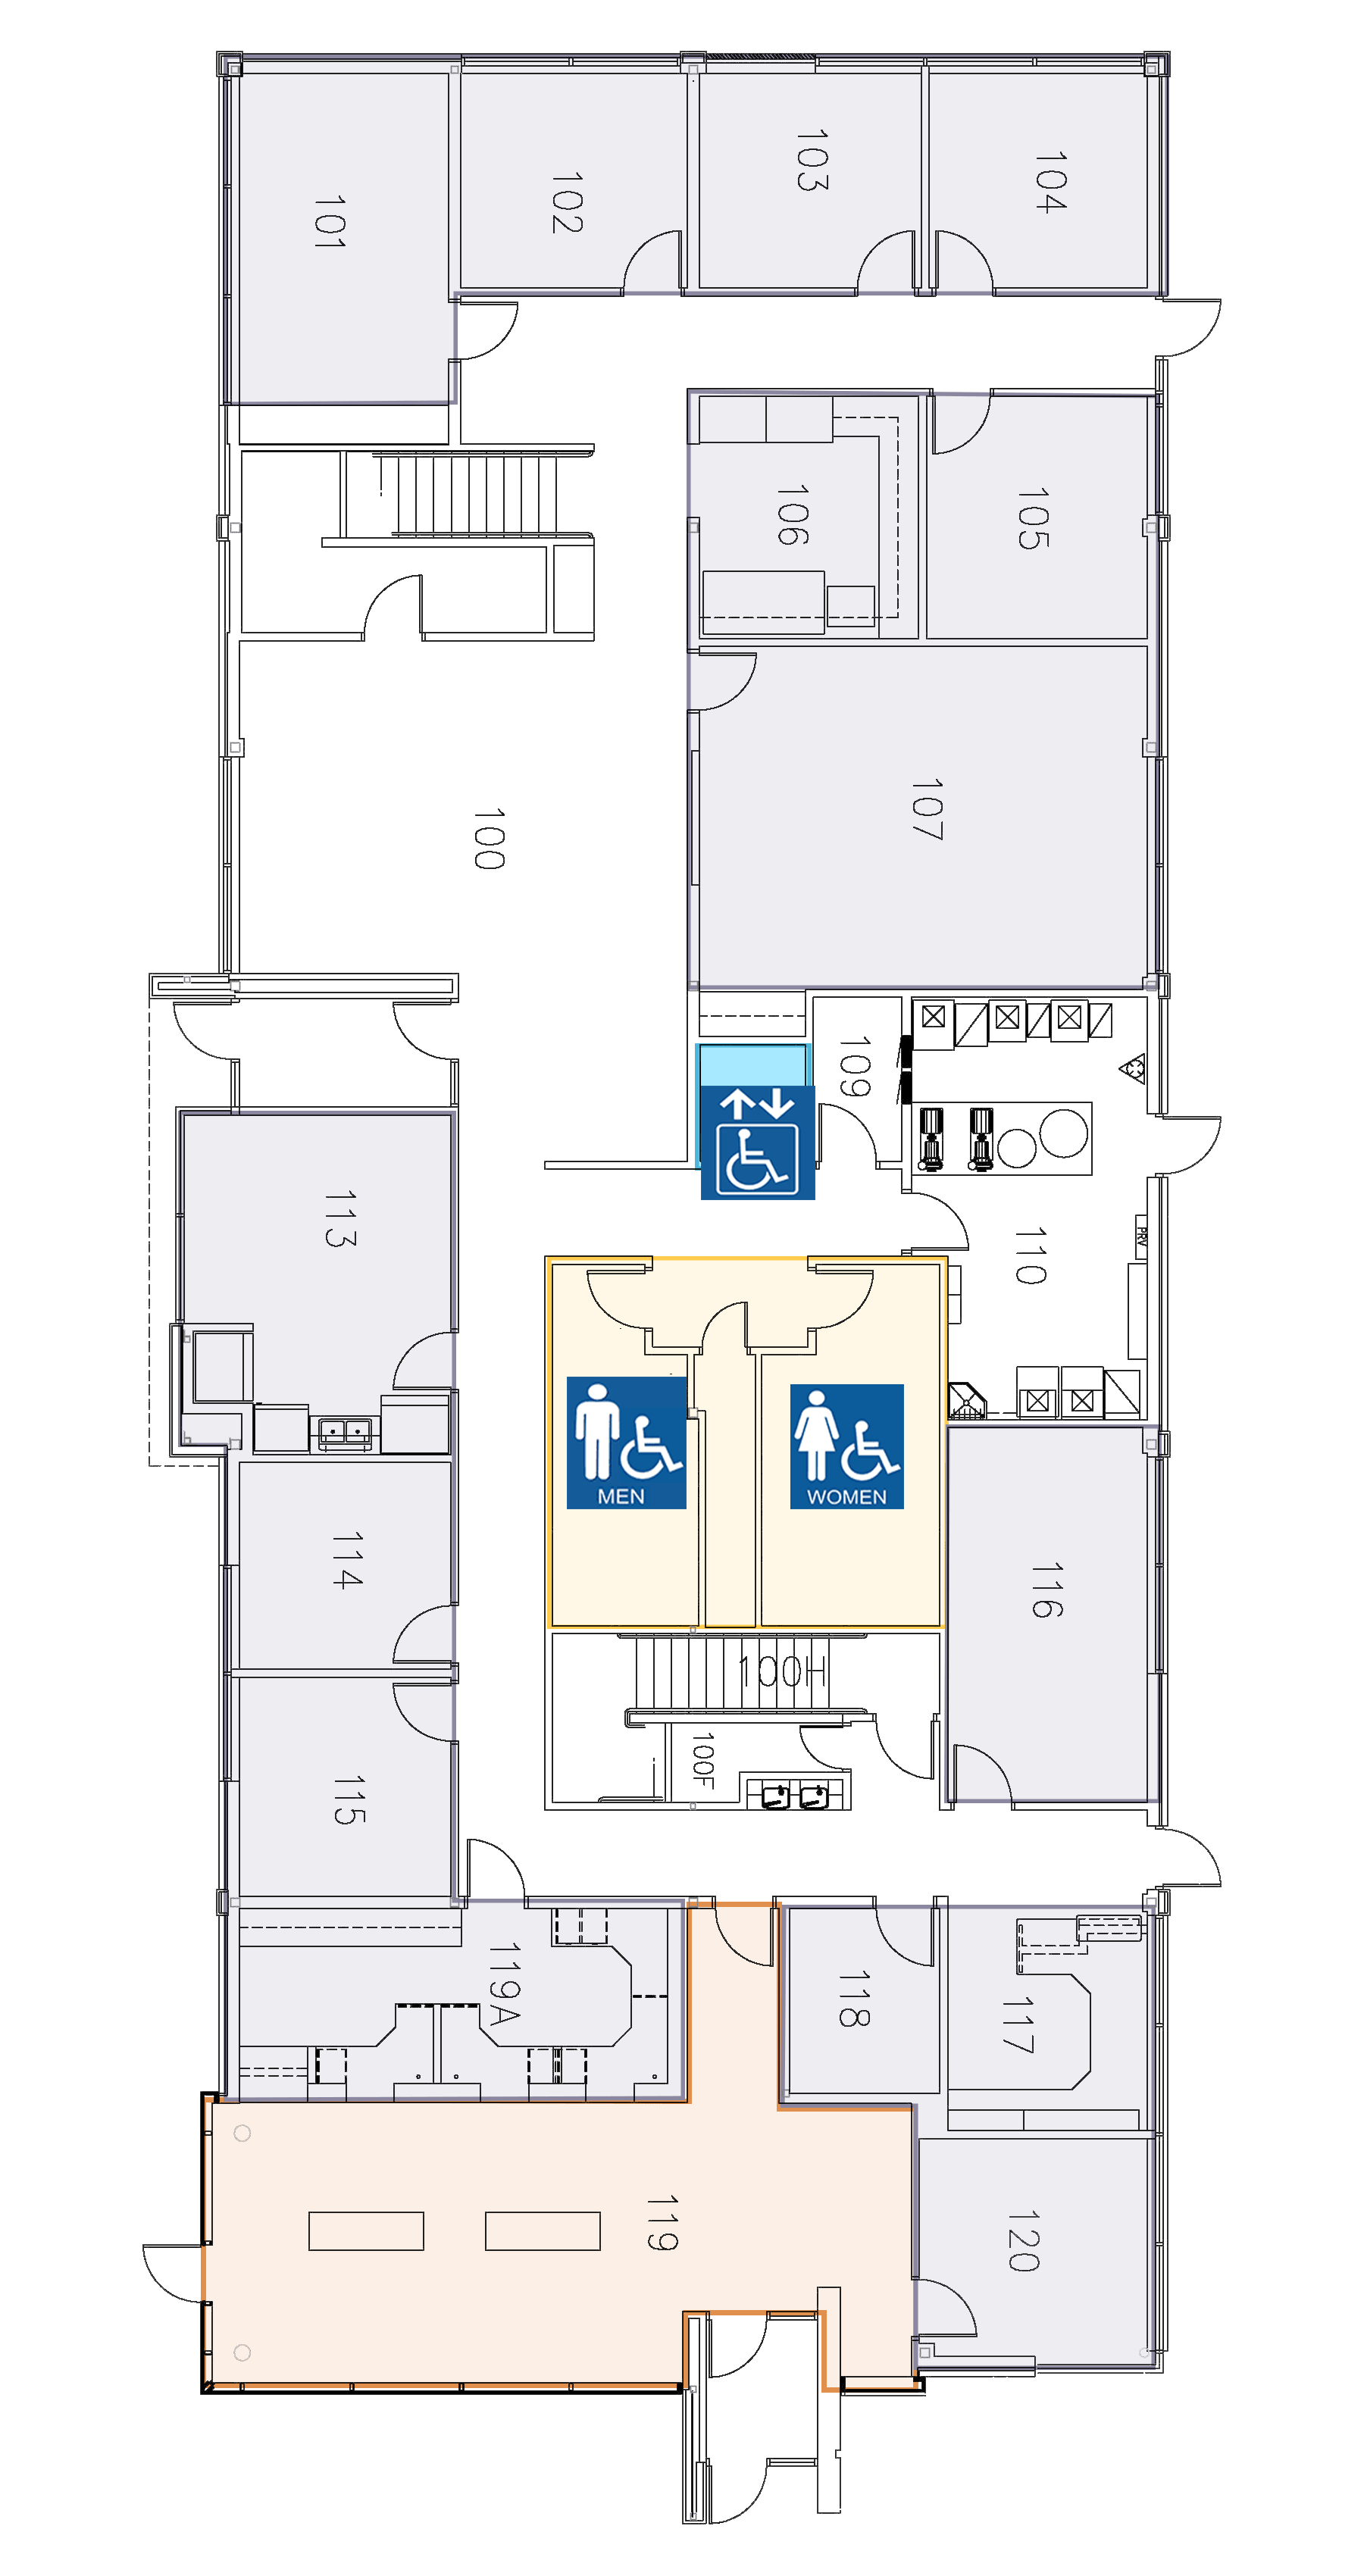 Facilities Complex Level 1